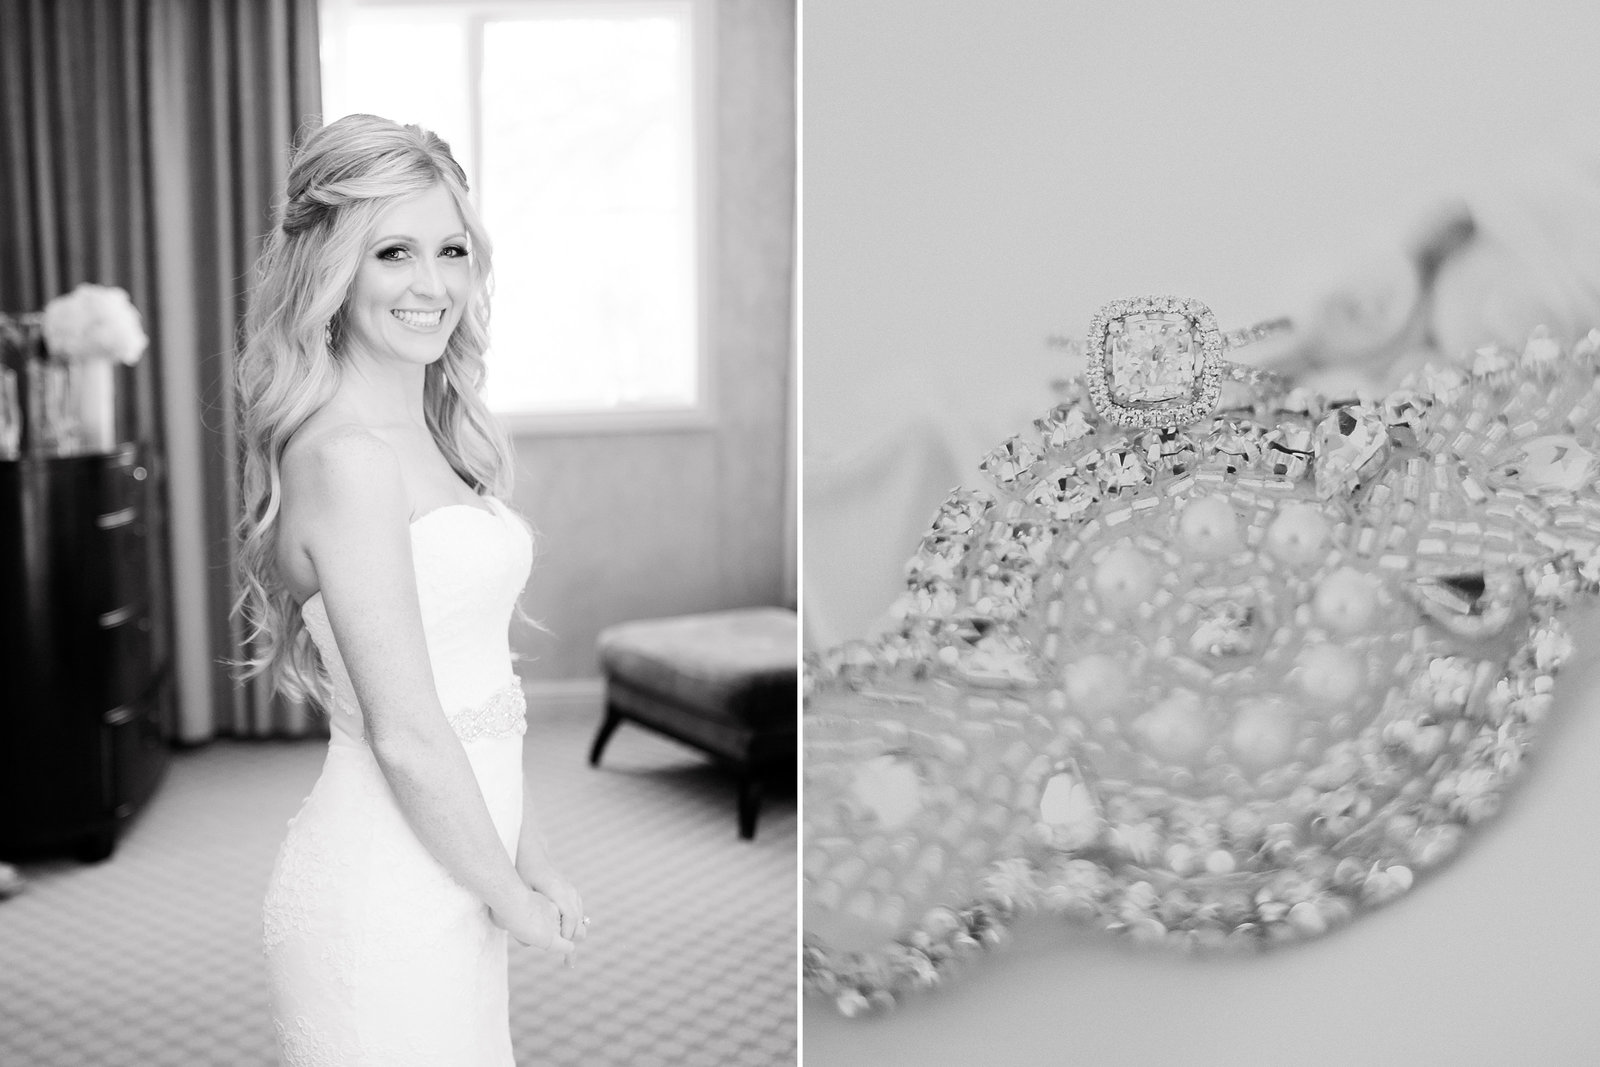 Beautiful black & white photo of bride in hotel room & close up of garter on her wedding day  | Susie Moreno Photography